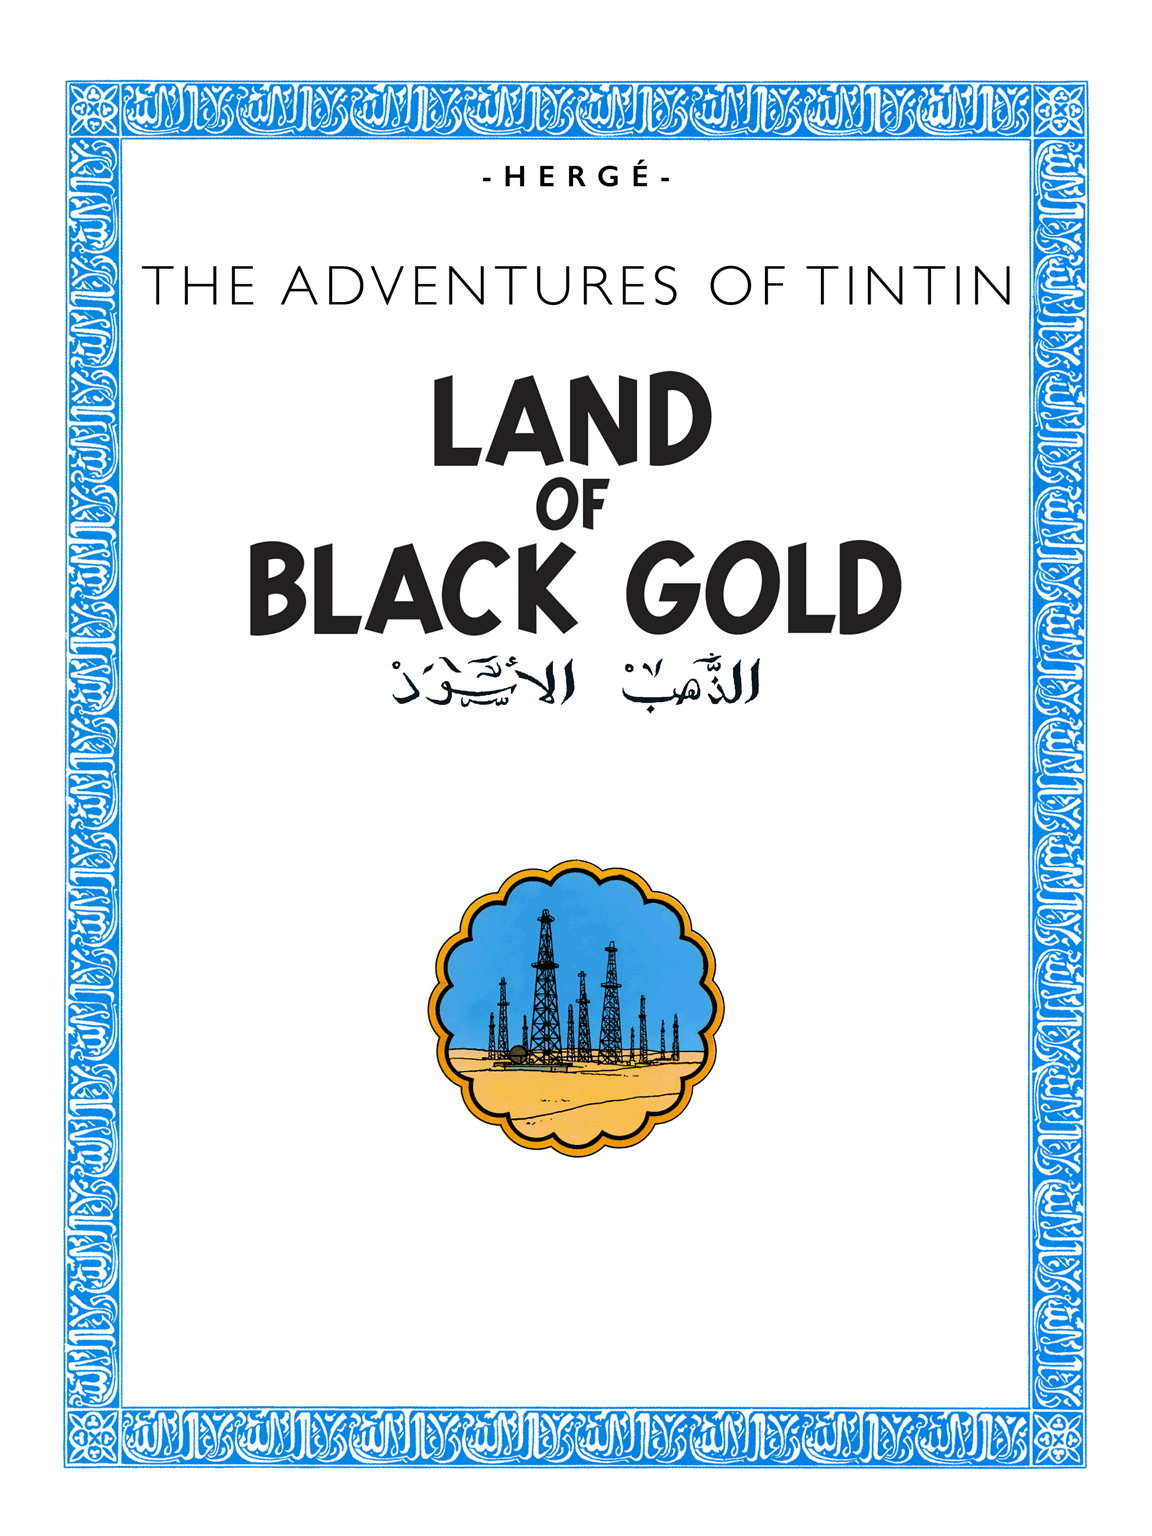 Land of Black Gold - Title page